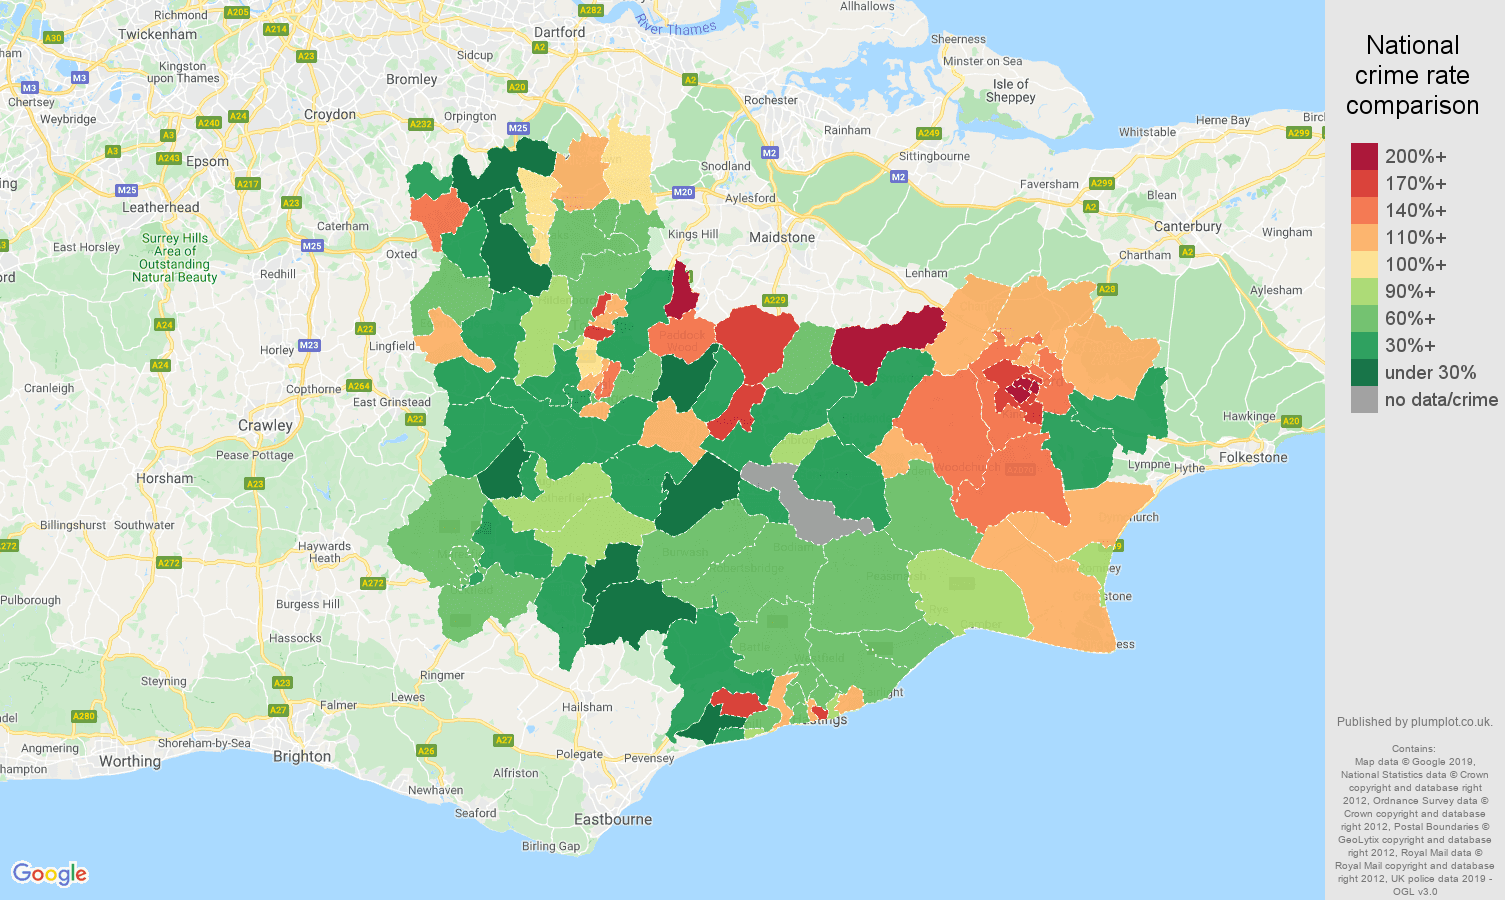 Tonbridge other crime rate comparison map